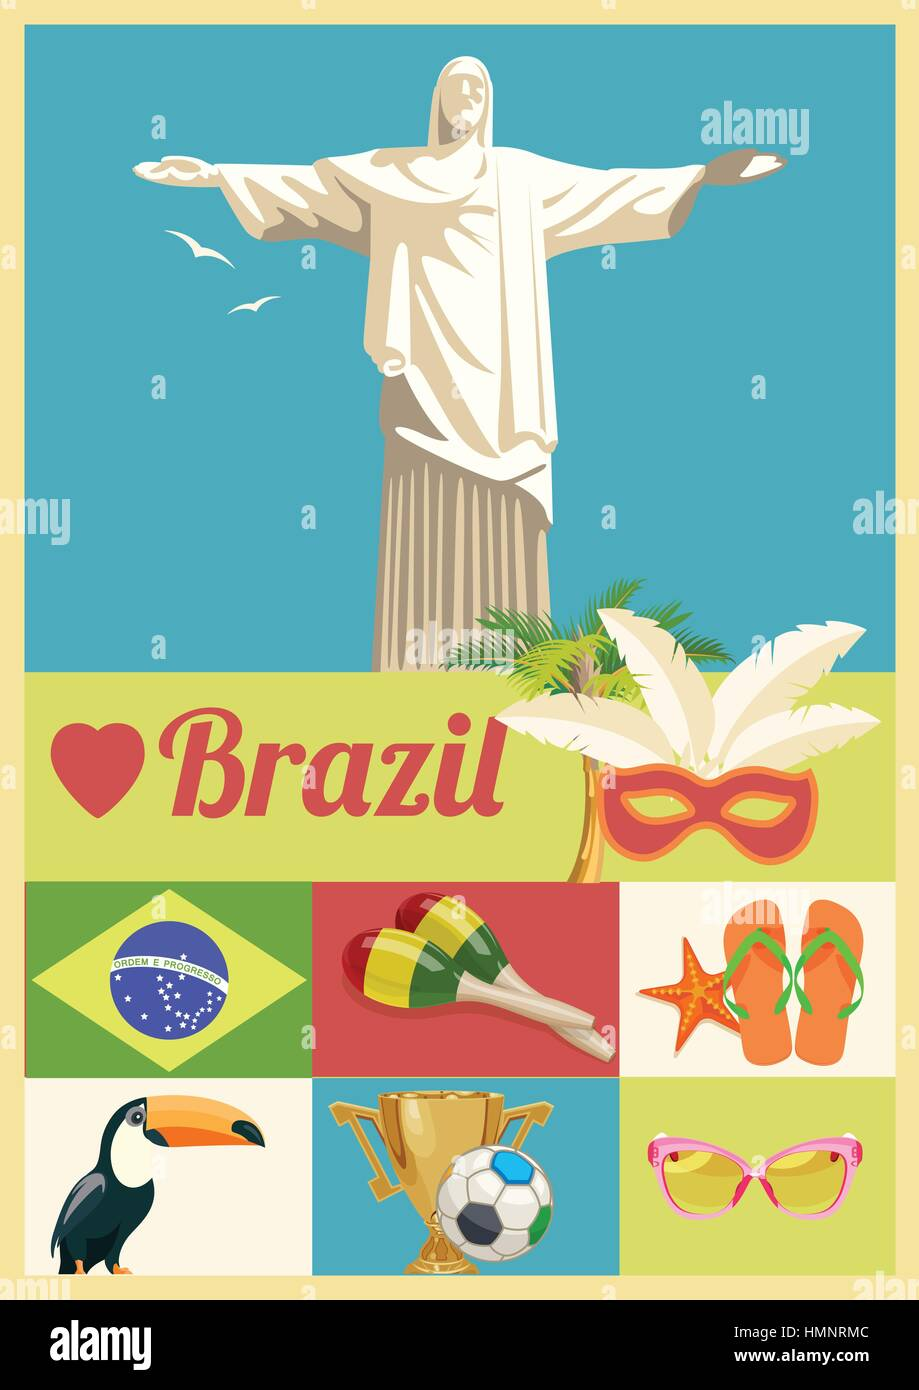 Poster design landscape - Stock Vector Vector Travel Poster Of Brazil With Colorful Modern Design Brazilian Landscape And Monuments Rio De Janeiro Advertising Card With Statue Of